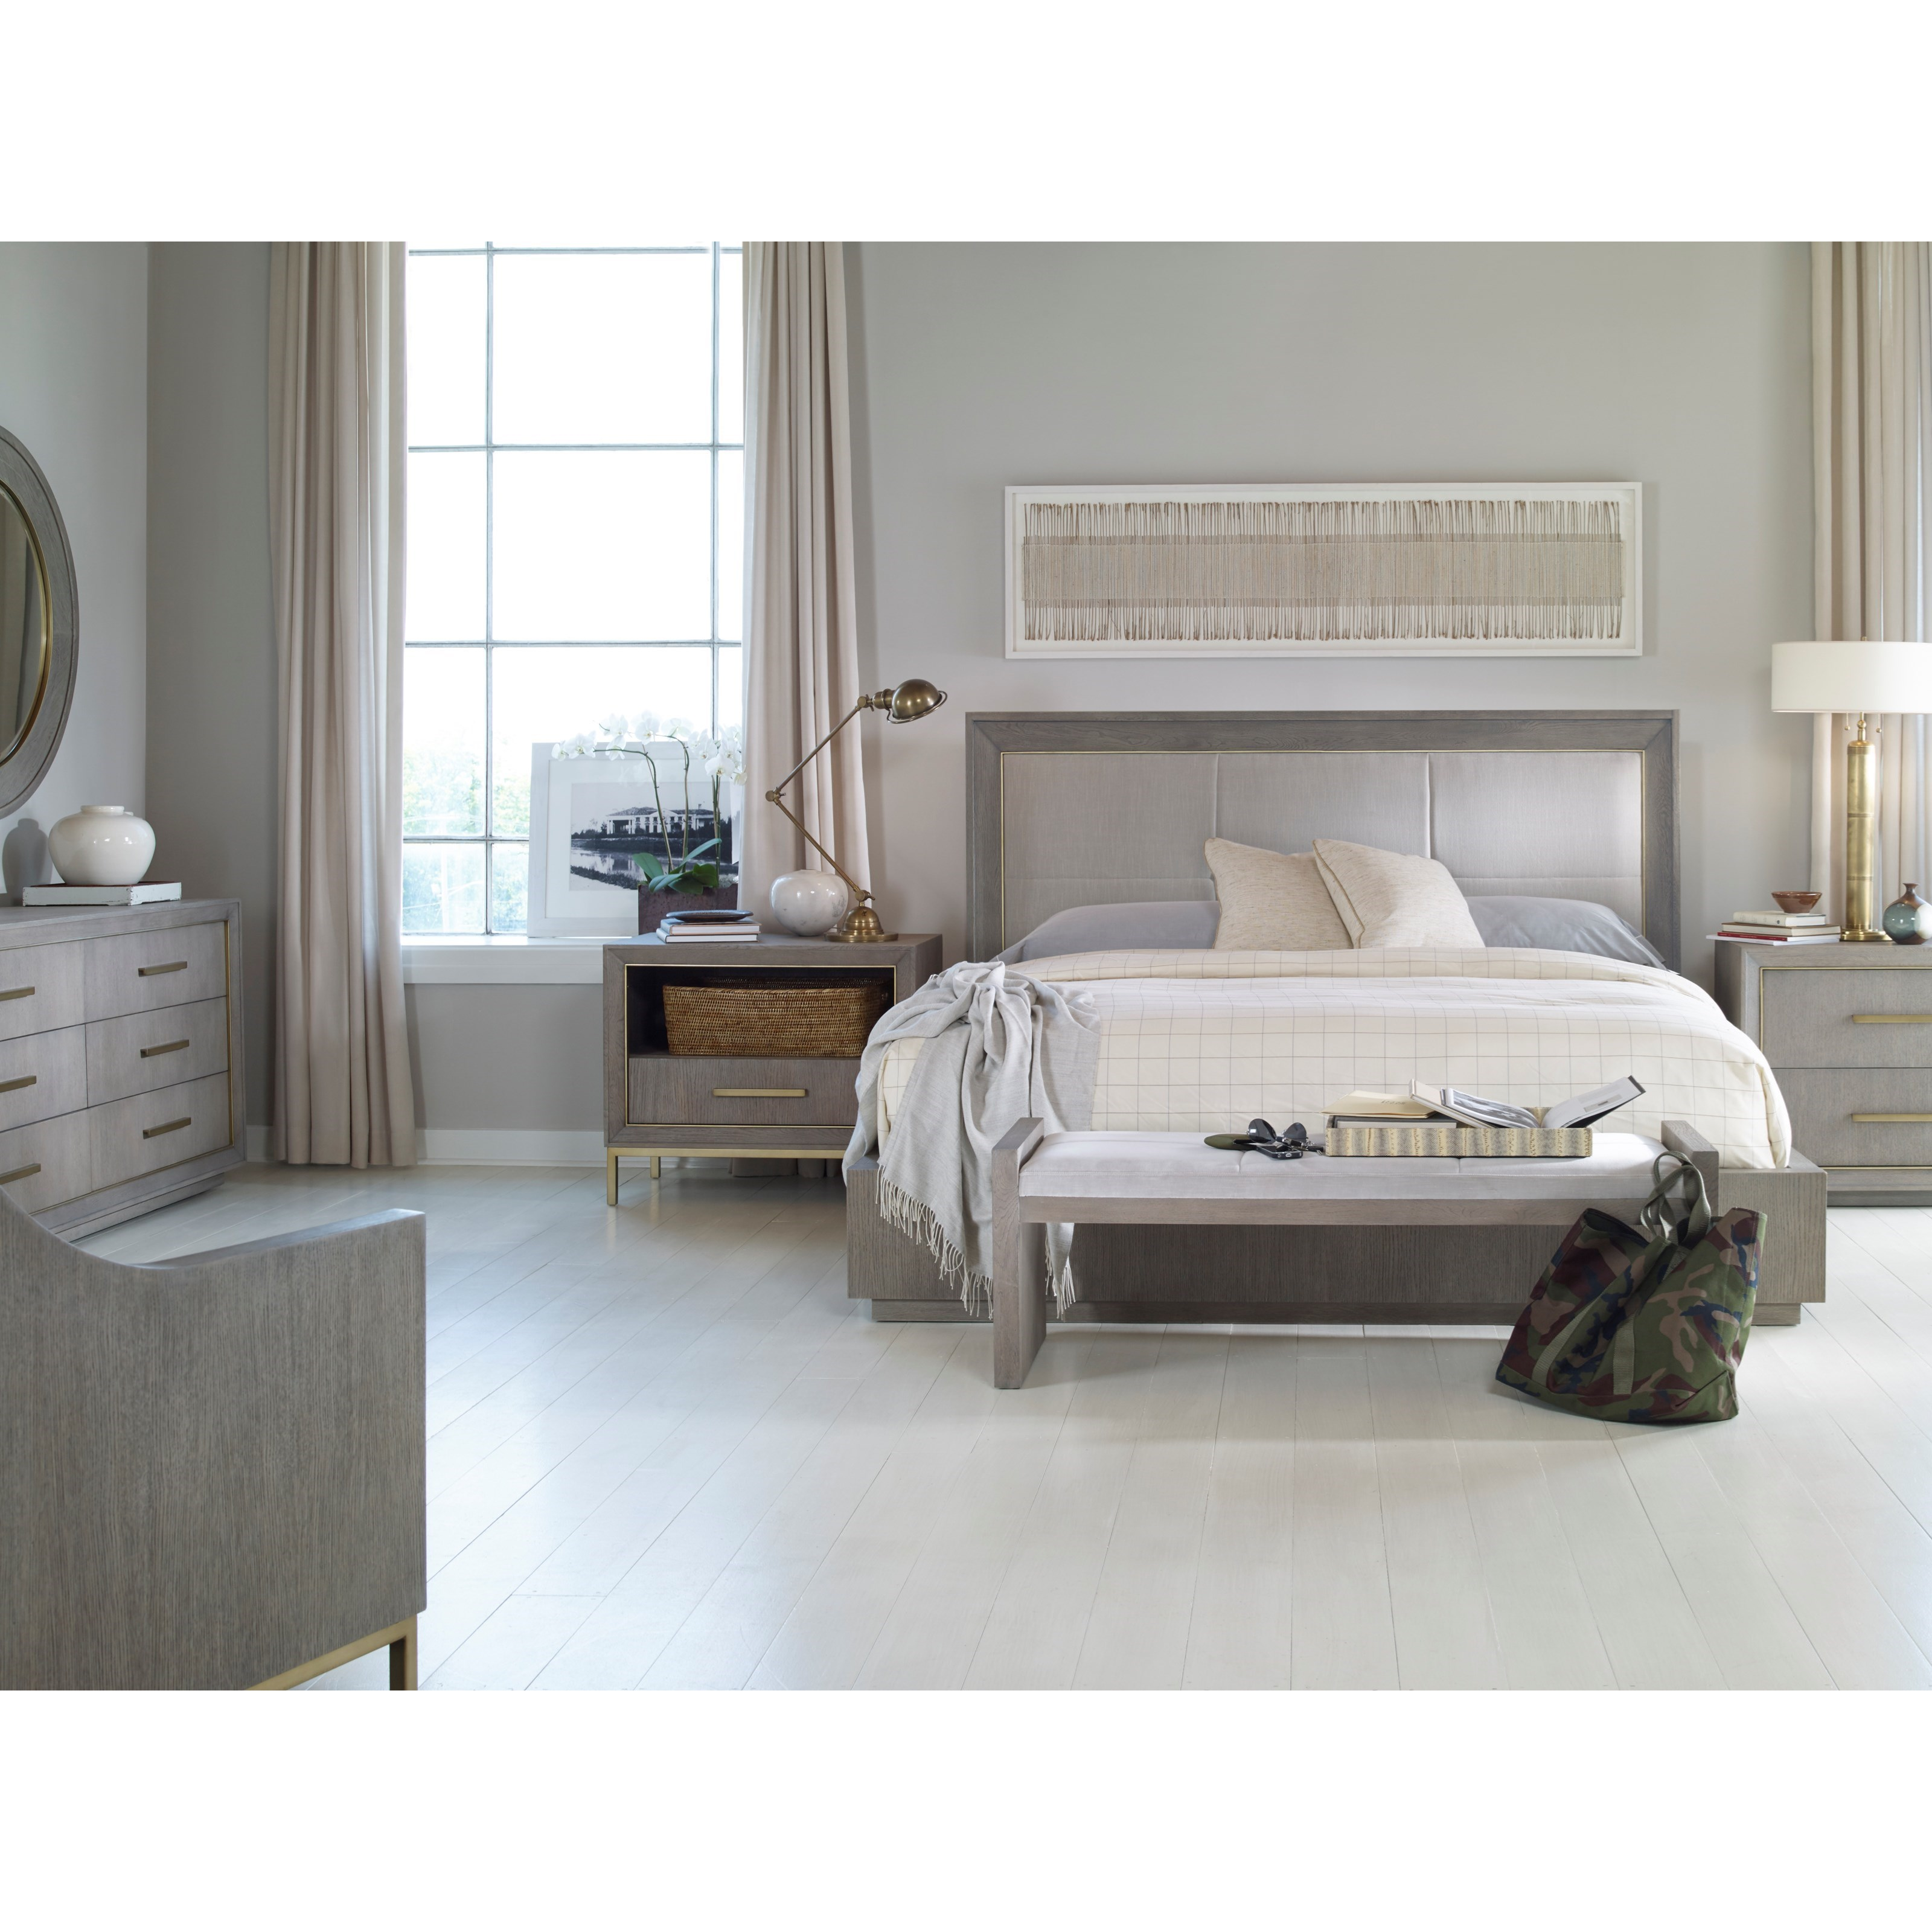 Archive Home and Monarch Queen Bedroom Group by Century at Alison Craig Home Furnishings